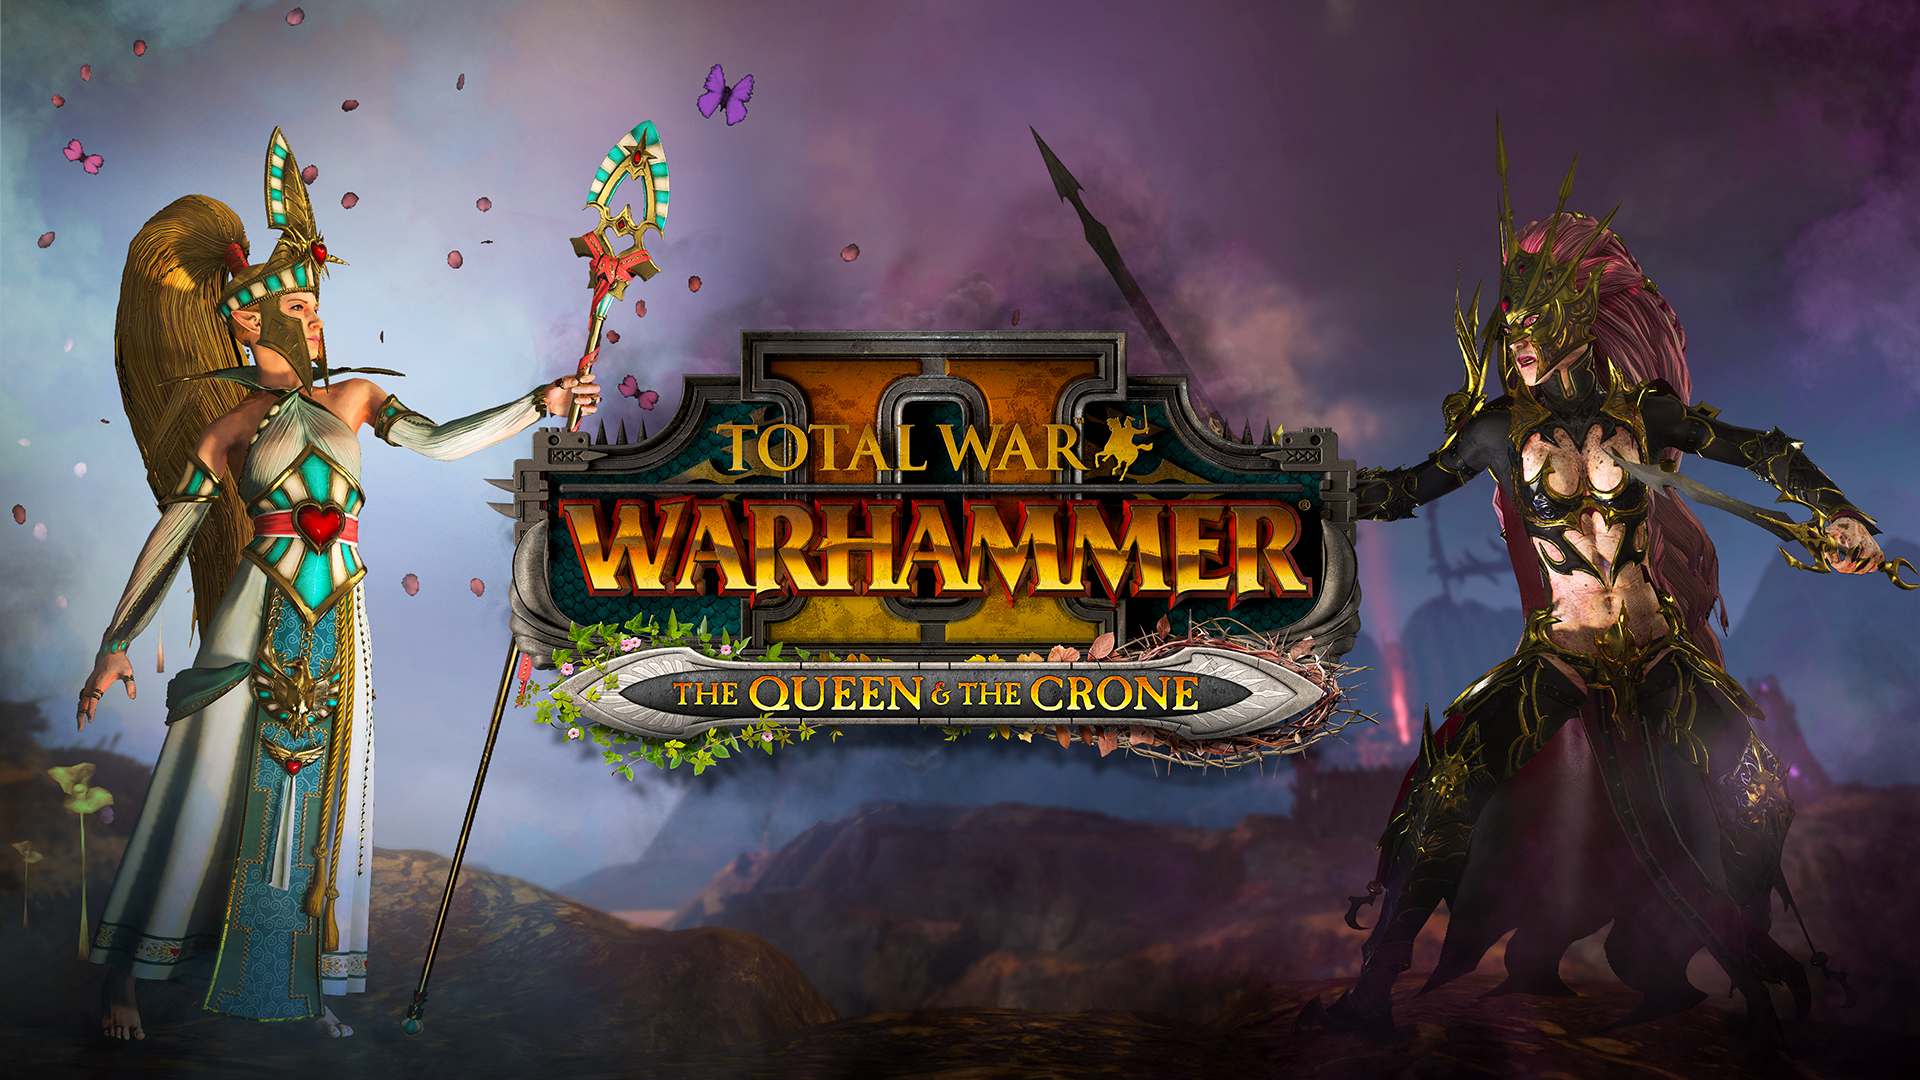 Dylan Sprouse Voice Acts in Total War DLC The Queen and the Crone